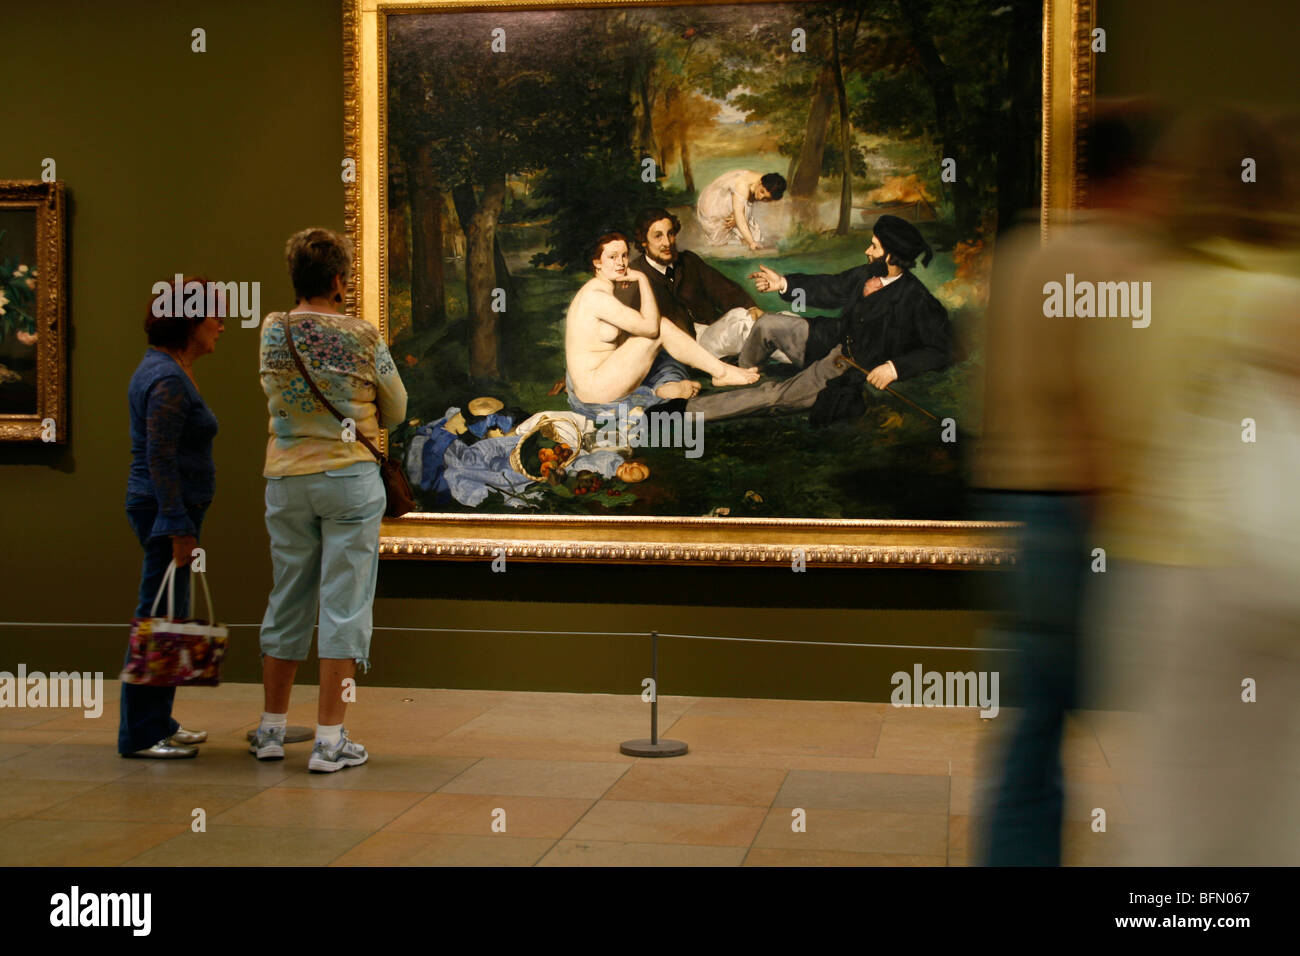 France, Paris. People admiring Manet's painting   Deujeuner sur l  herbe   in the Musee d  Orsay in Paris. - Stock Image